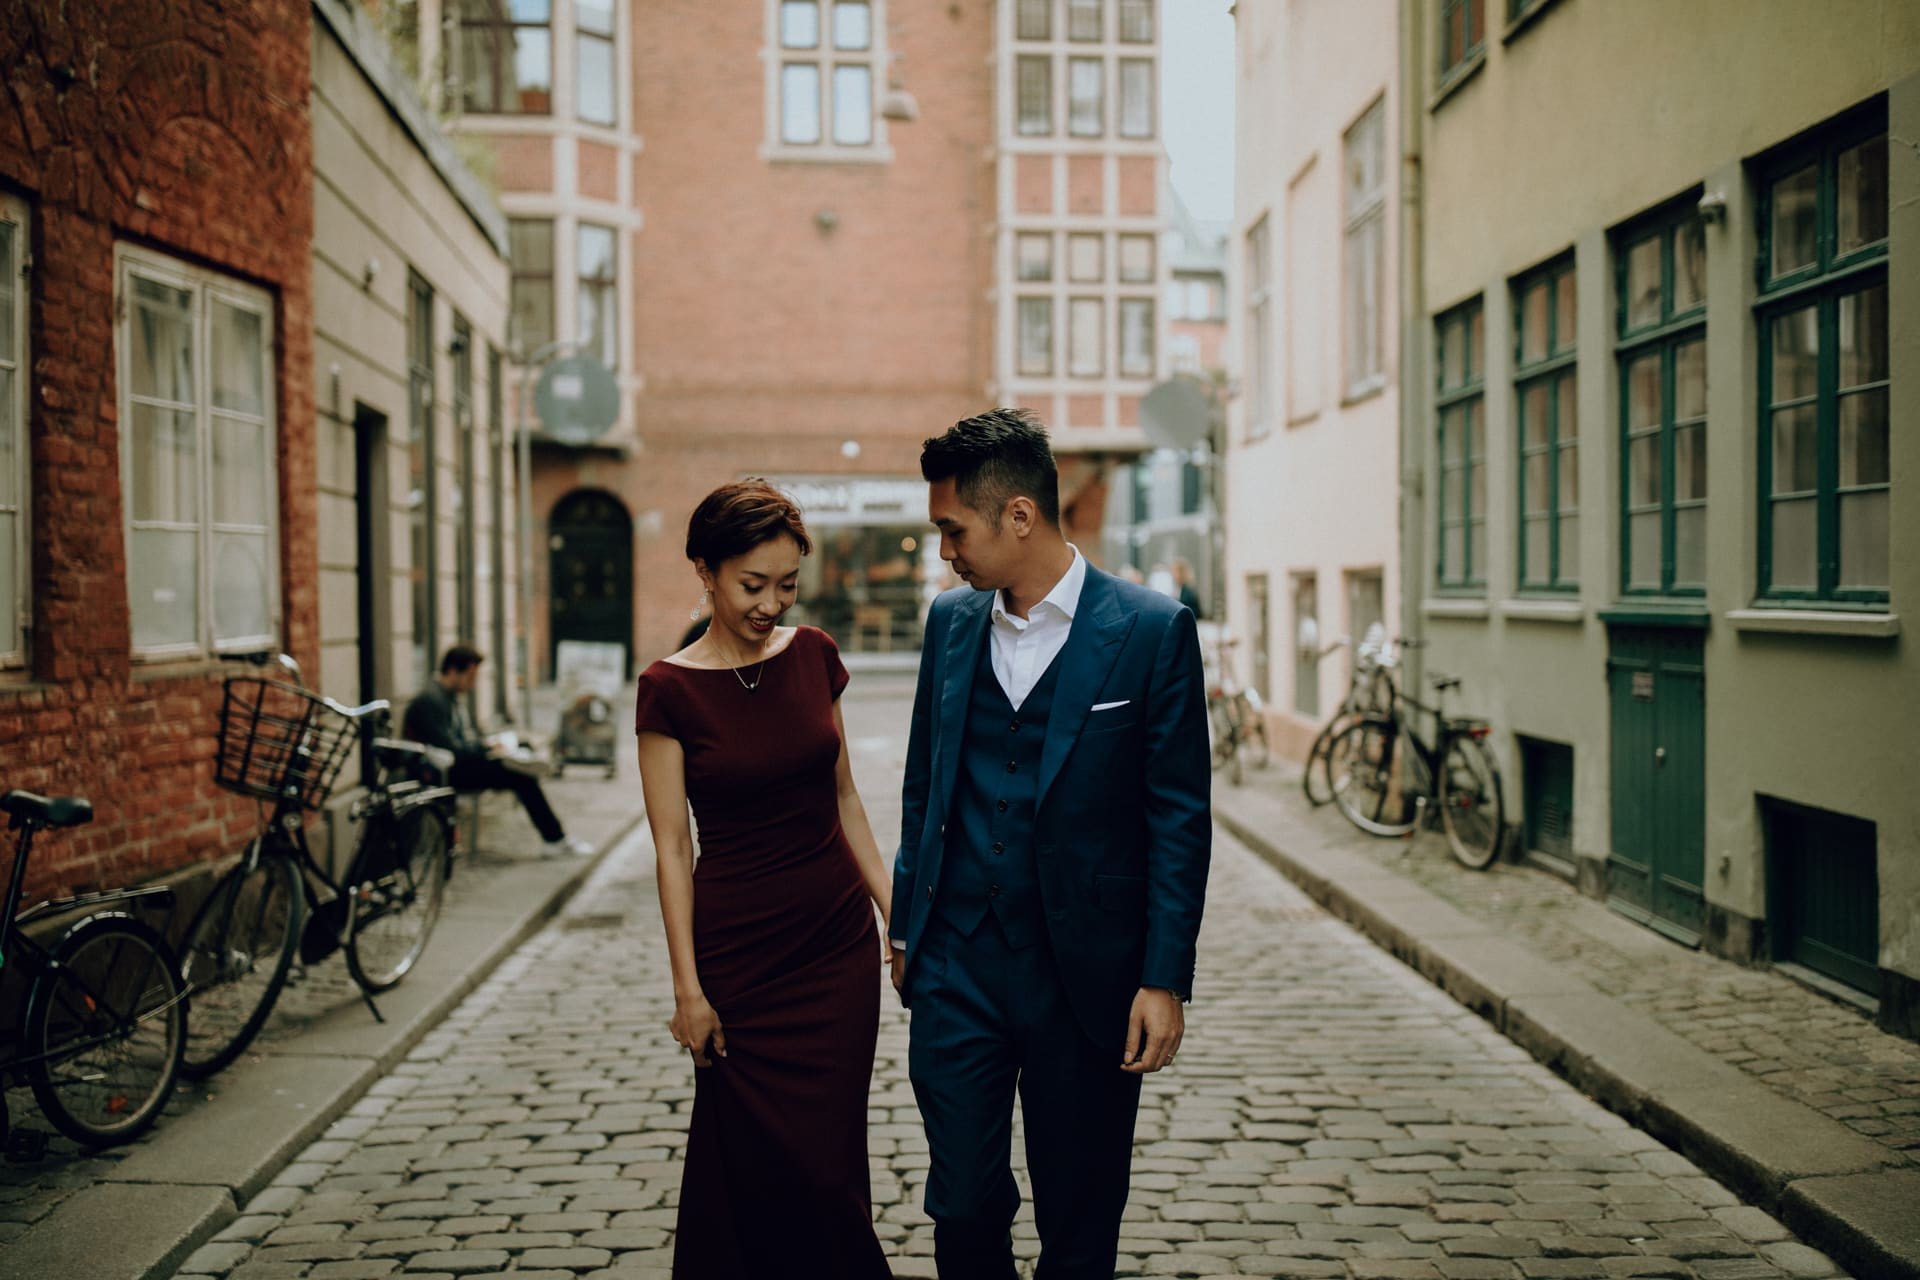 The wedding couple is walking thought the streets of Copenahagen.